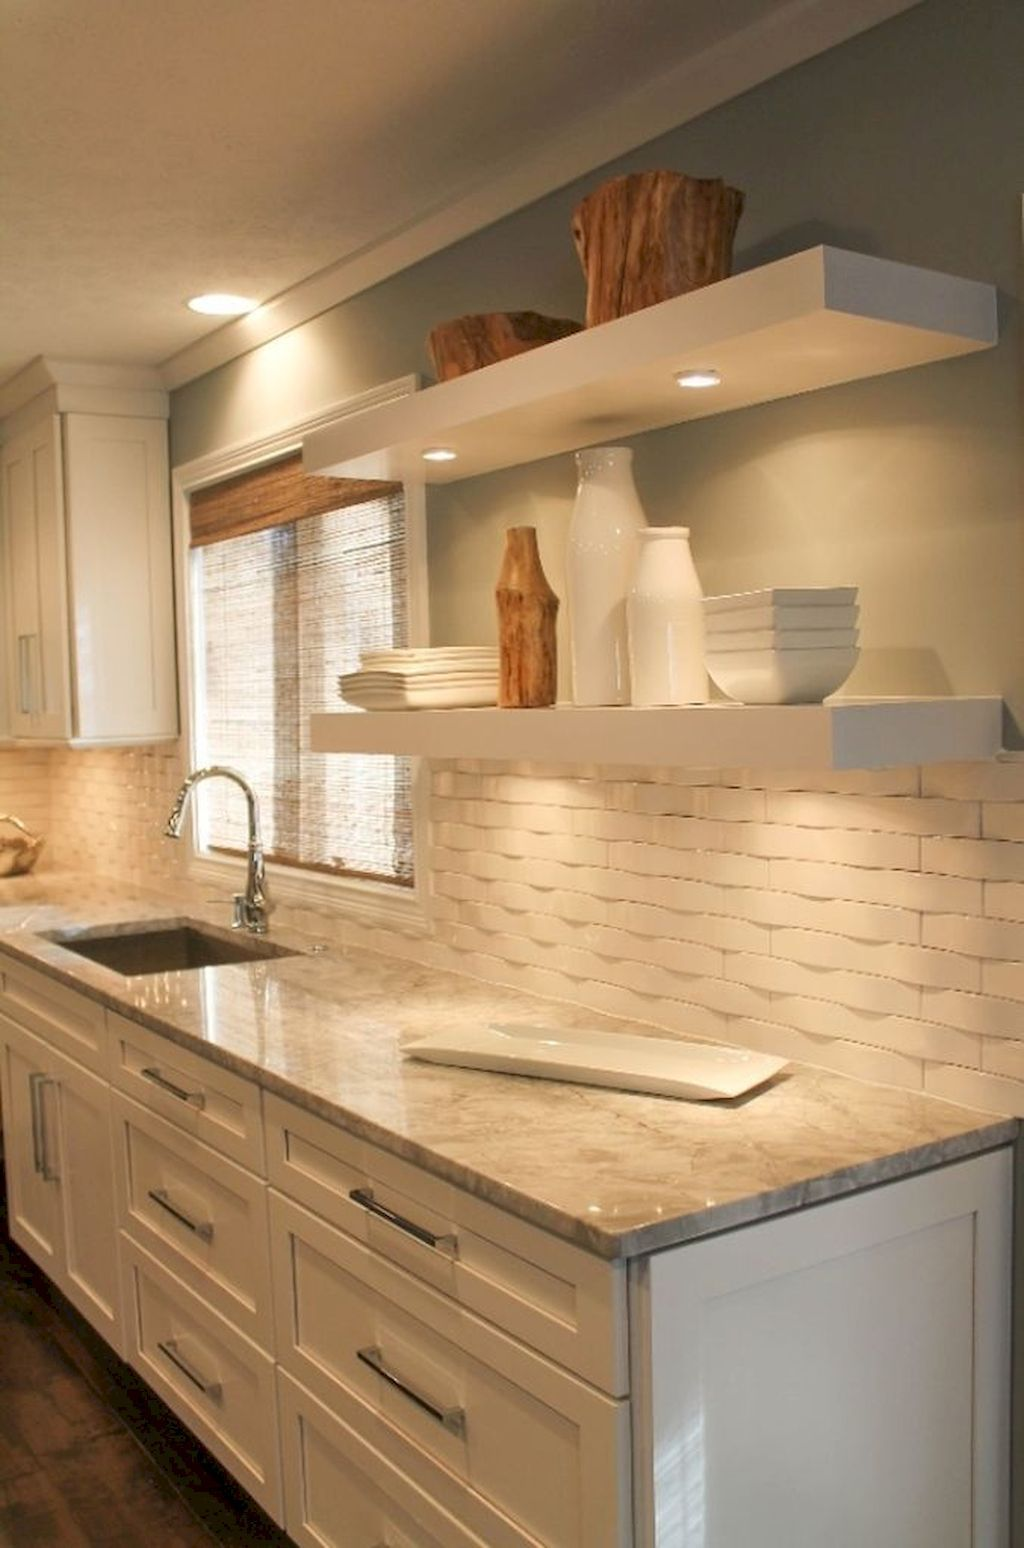 Awesome Creative Kitchen Backsplash Ideas 32